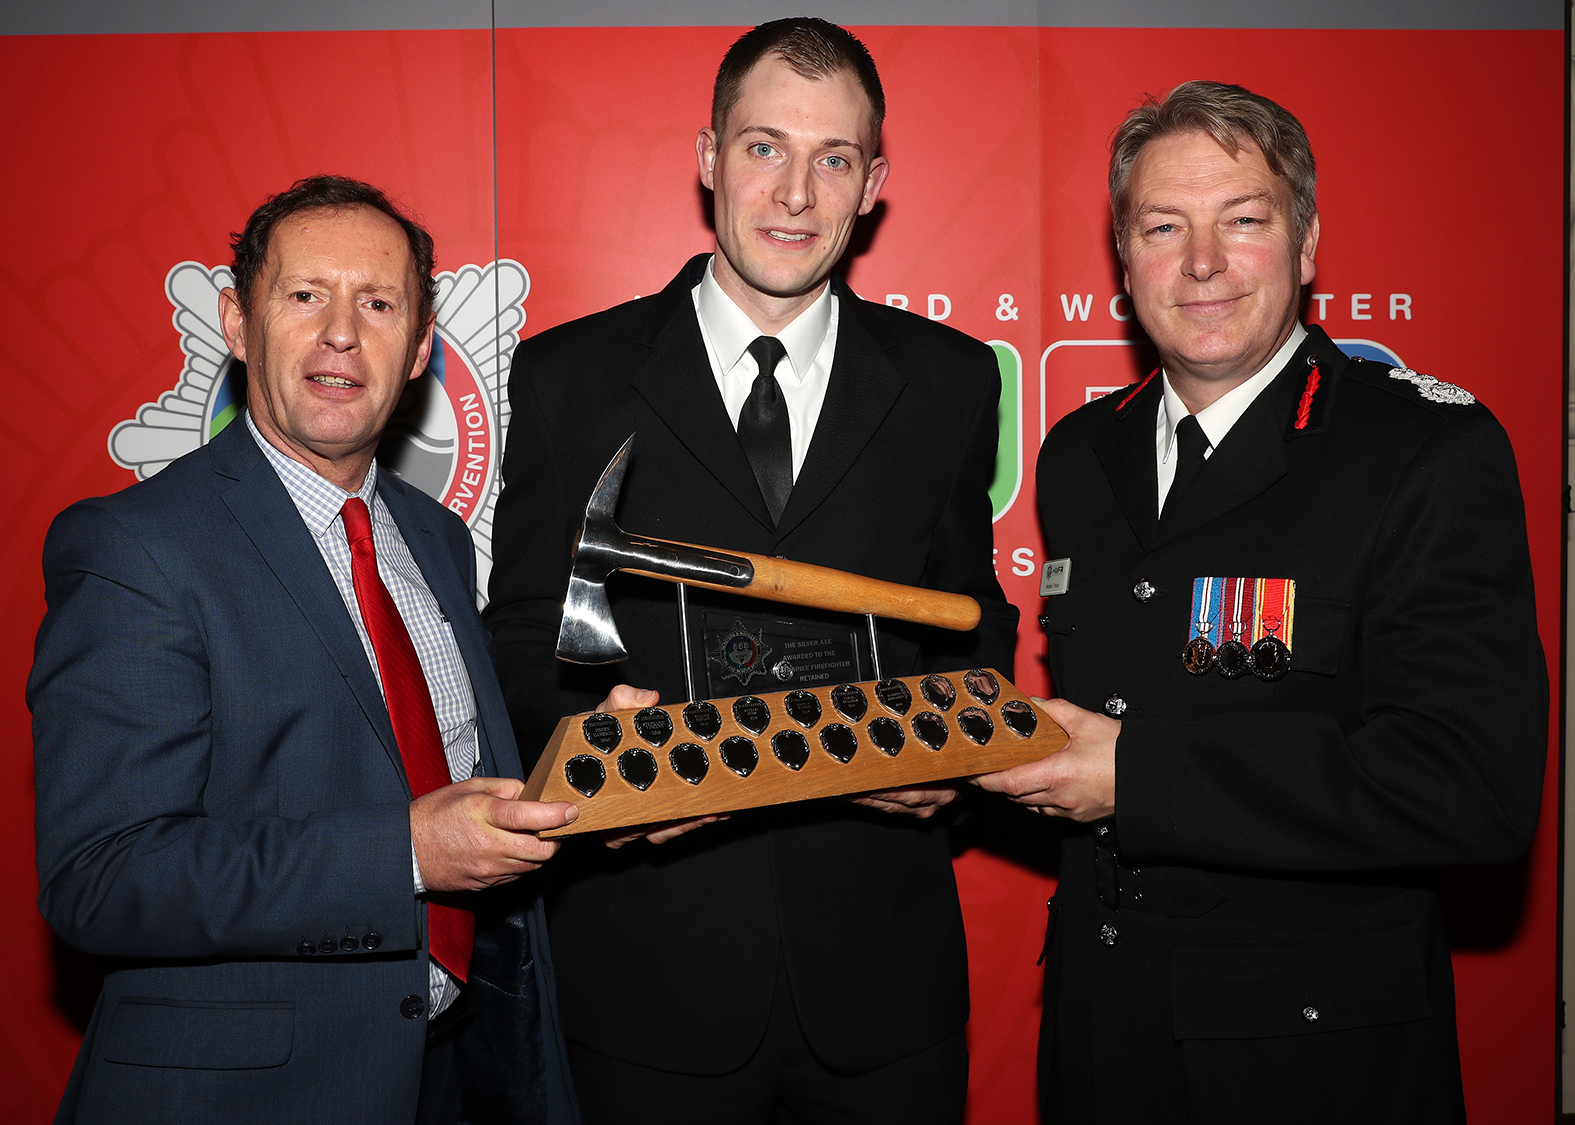 Fire and Rescue Service annual honours (Herefordshire) - News